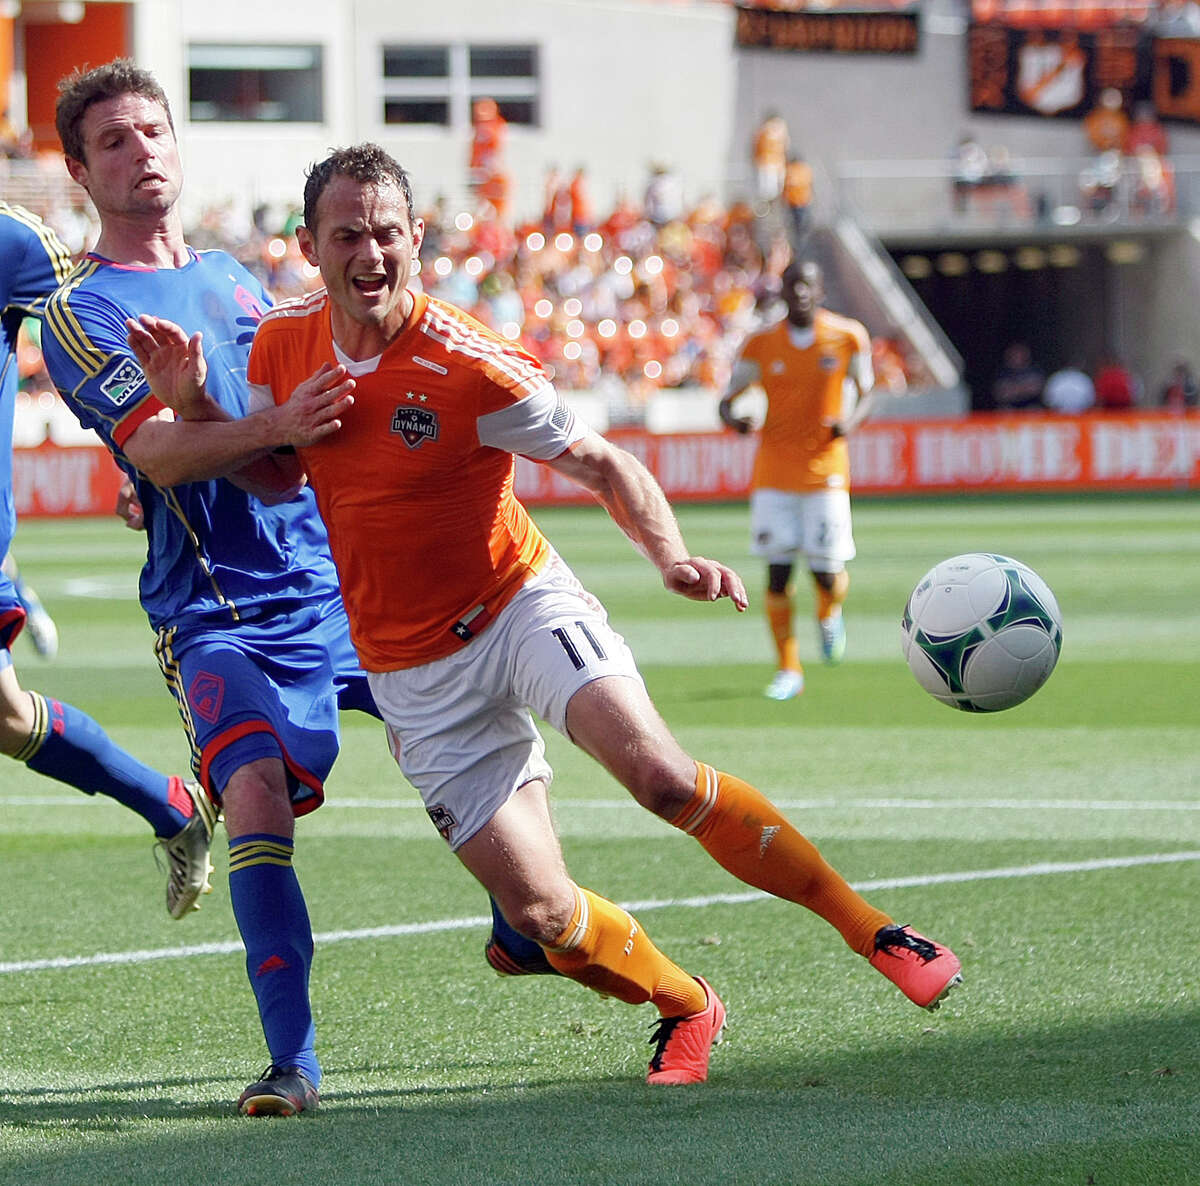 Colorado Rapids defender Drew Moor, left, is called for a foul as he defends Houston Dynamo midfielder Brad Davis during the first half of a MLS soccer game, Sunday, April 28, 2013, in BBVA Compass Stadium in Houston.